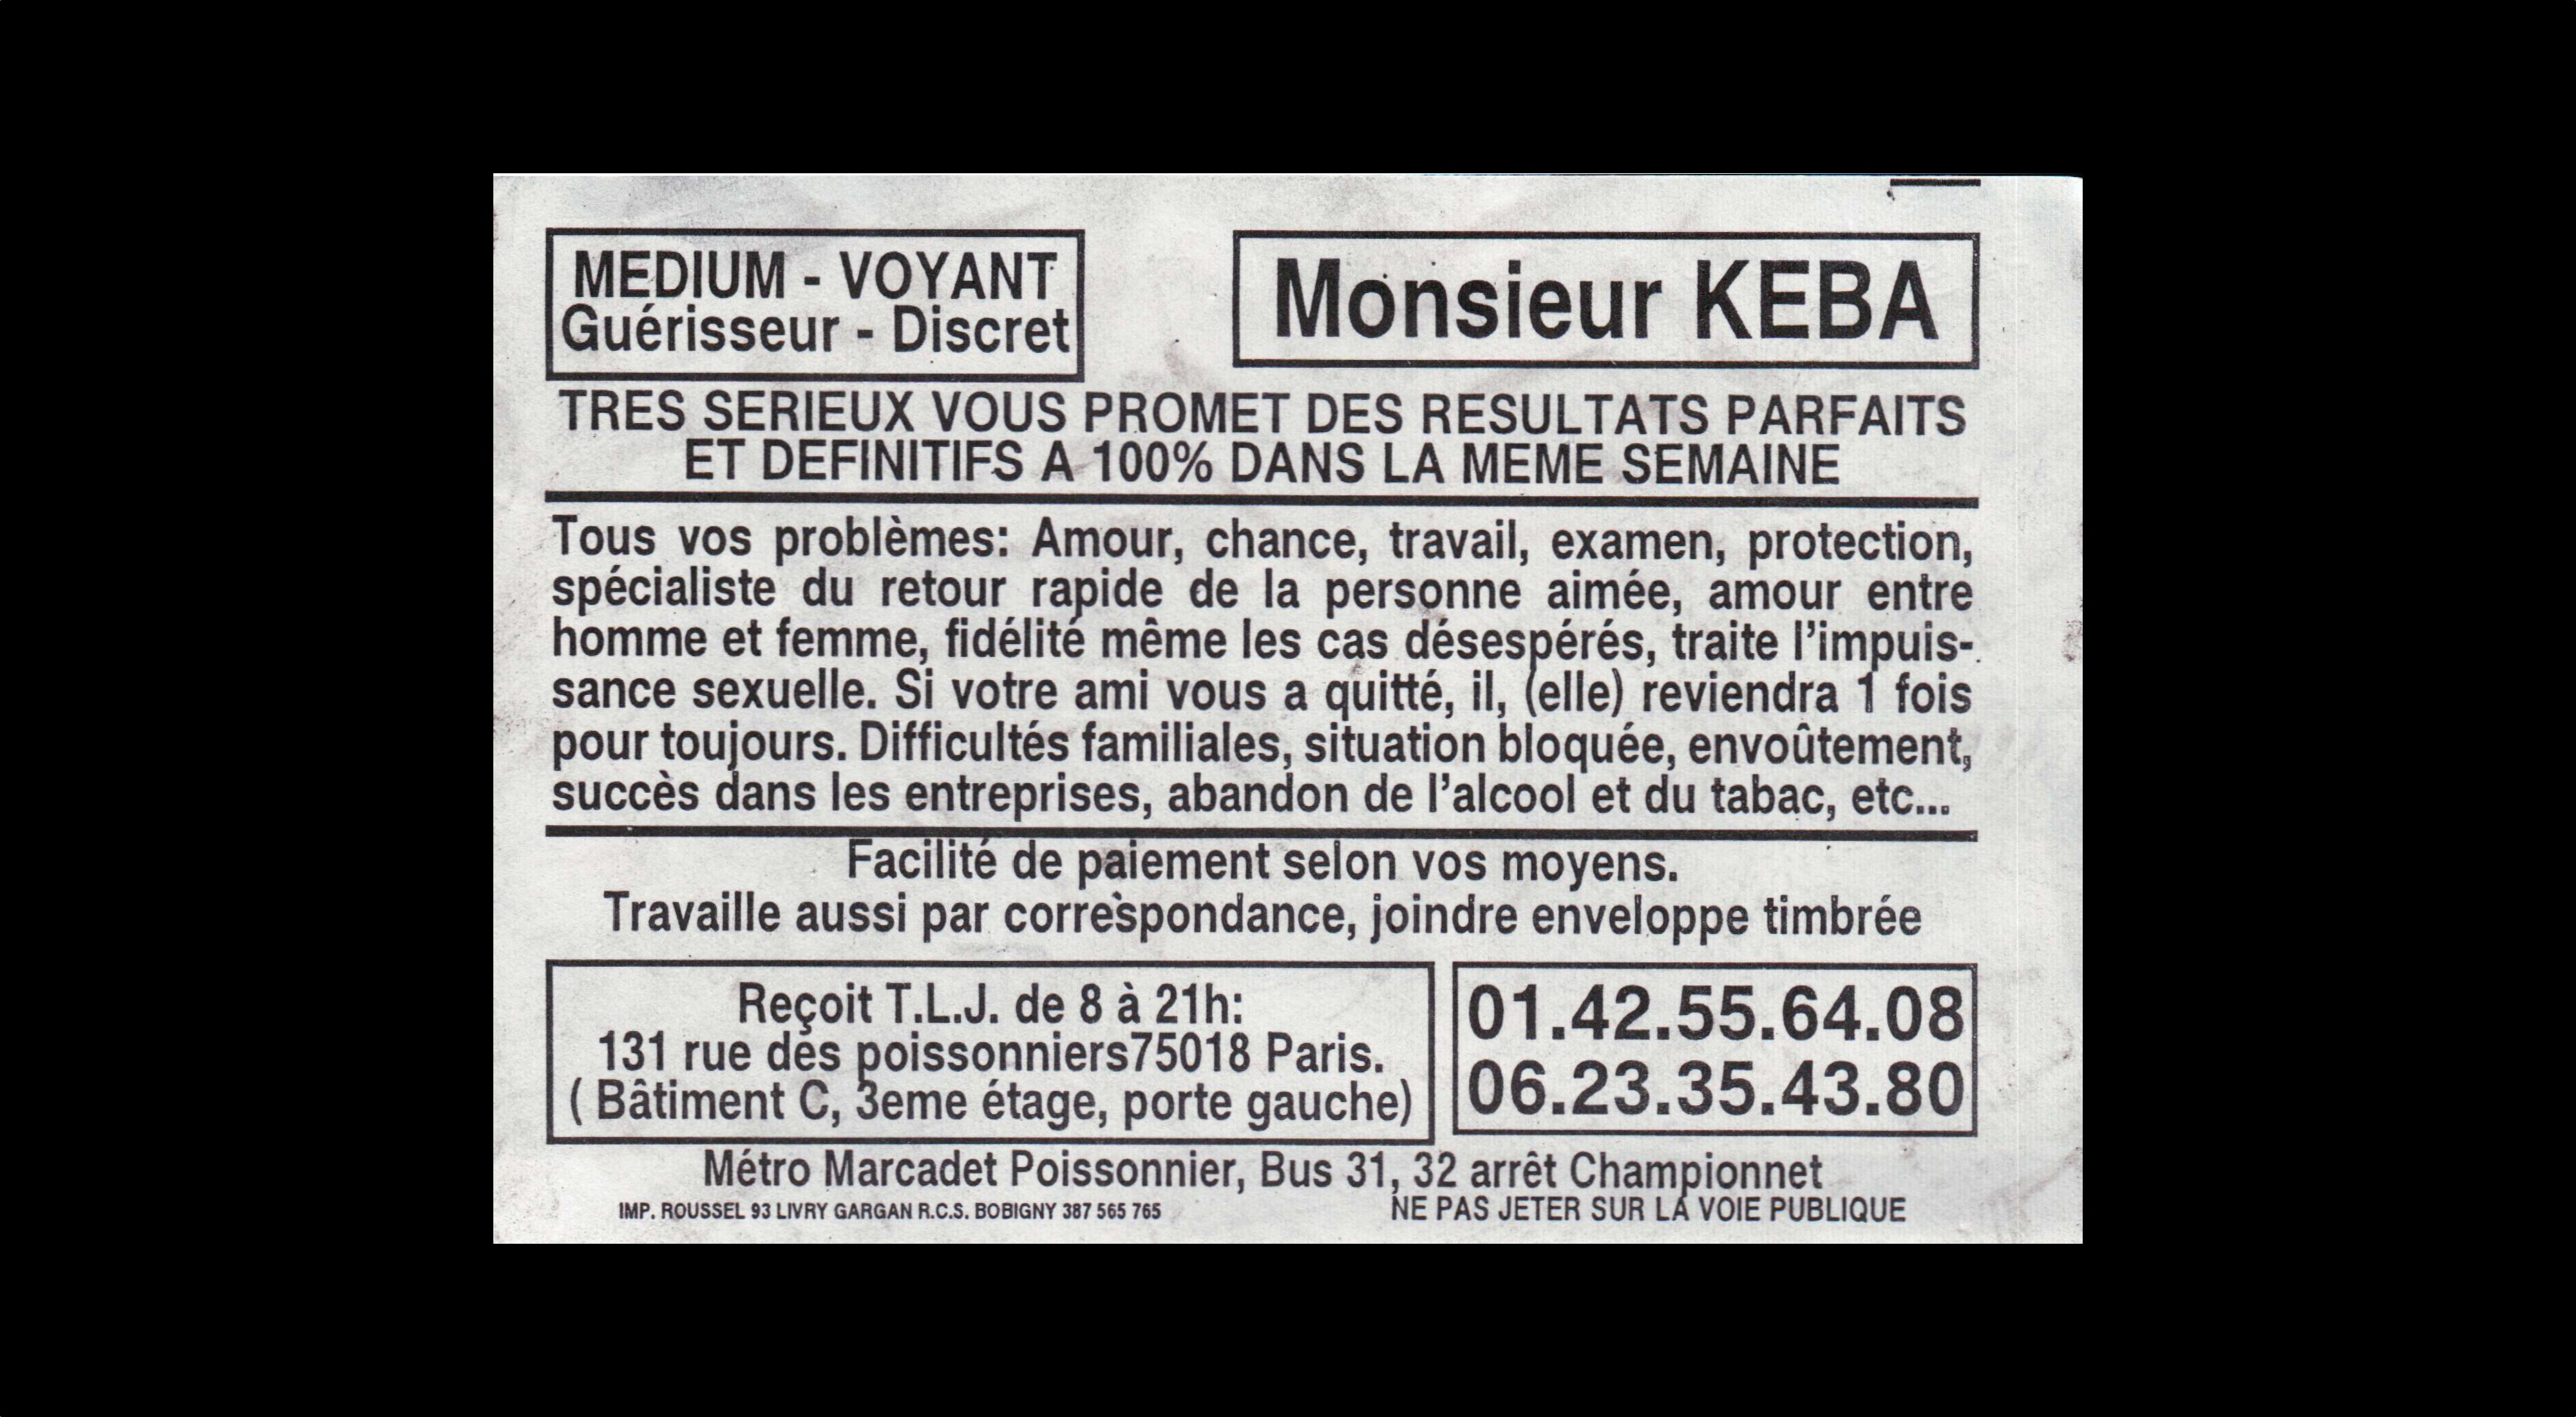 card of Monsieur KEBA (2007)